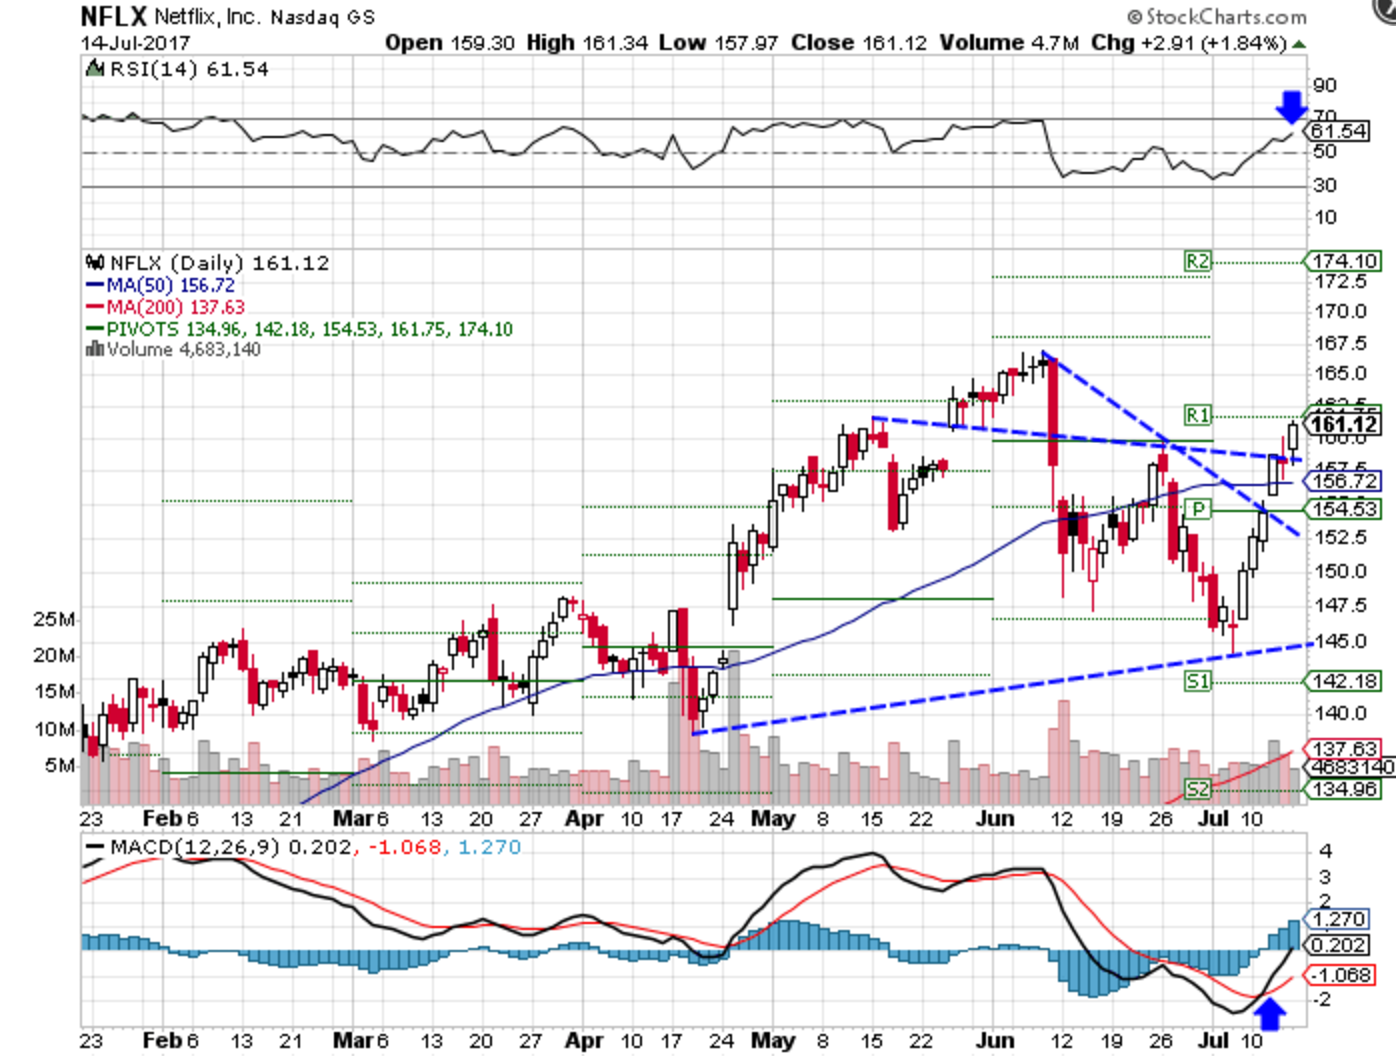 Technical chart showing the recent performance of Netflix, Inc. (NFLX) stock